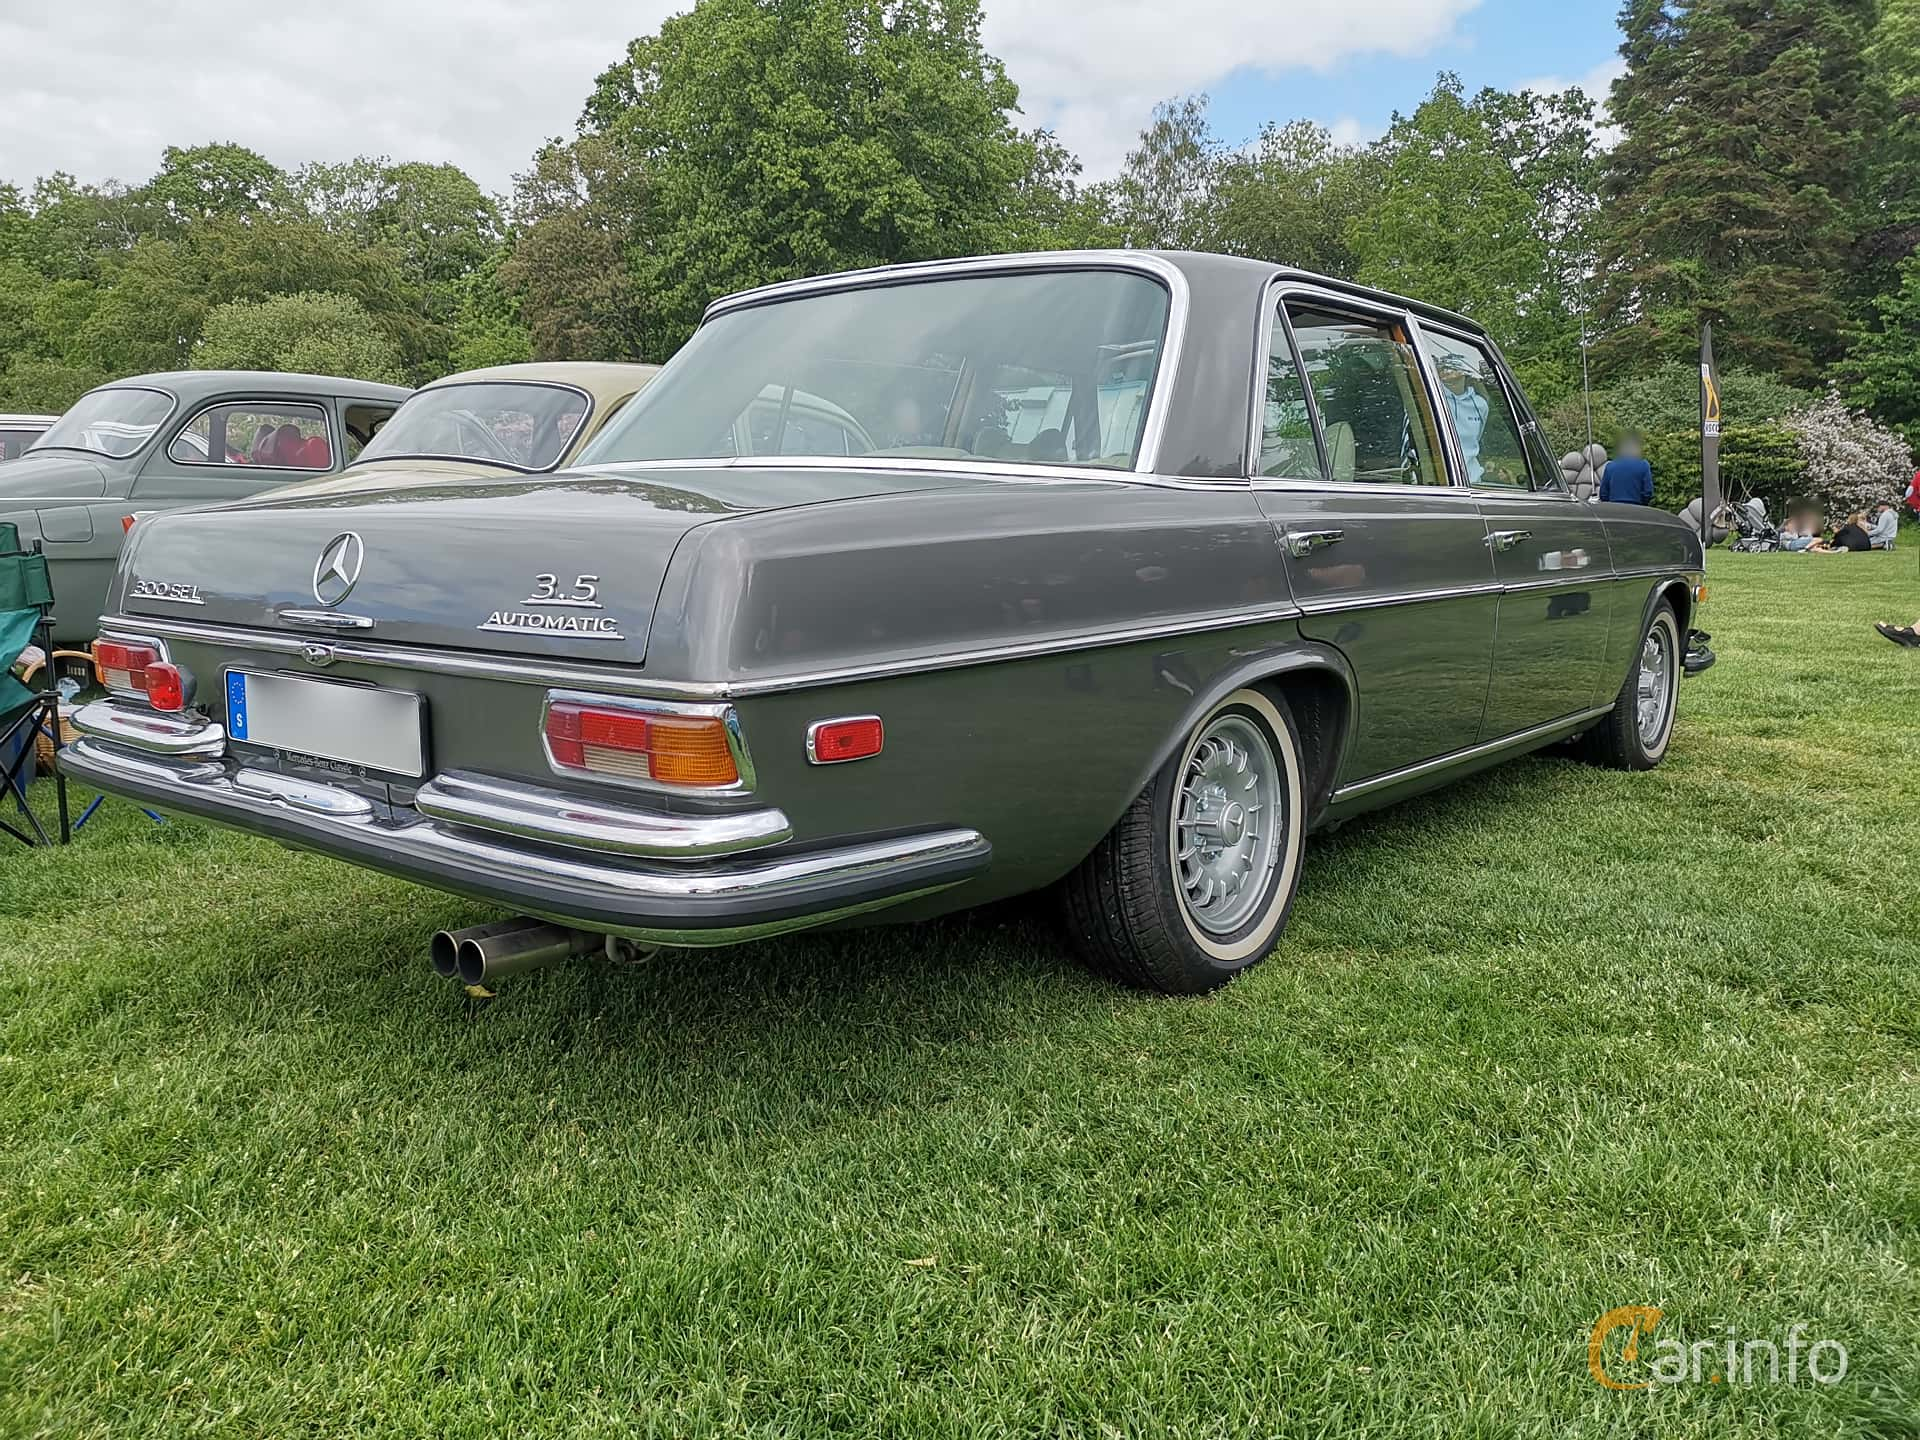 Mercedes-Benz 300 SEL 3.5  Automatic, 200hp, 1972 at Sofiero Classic 2019